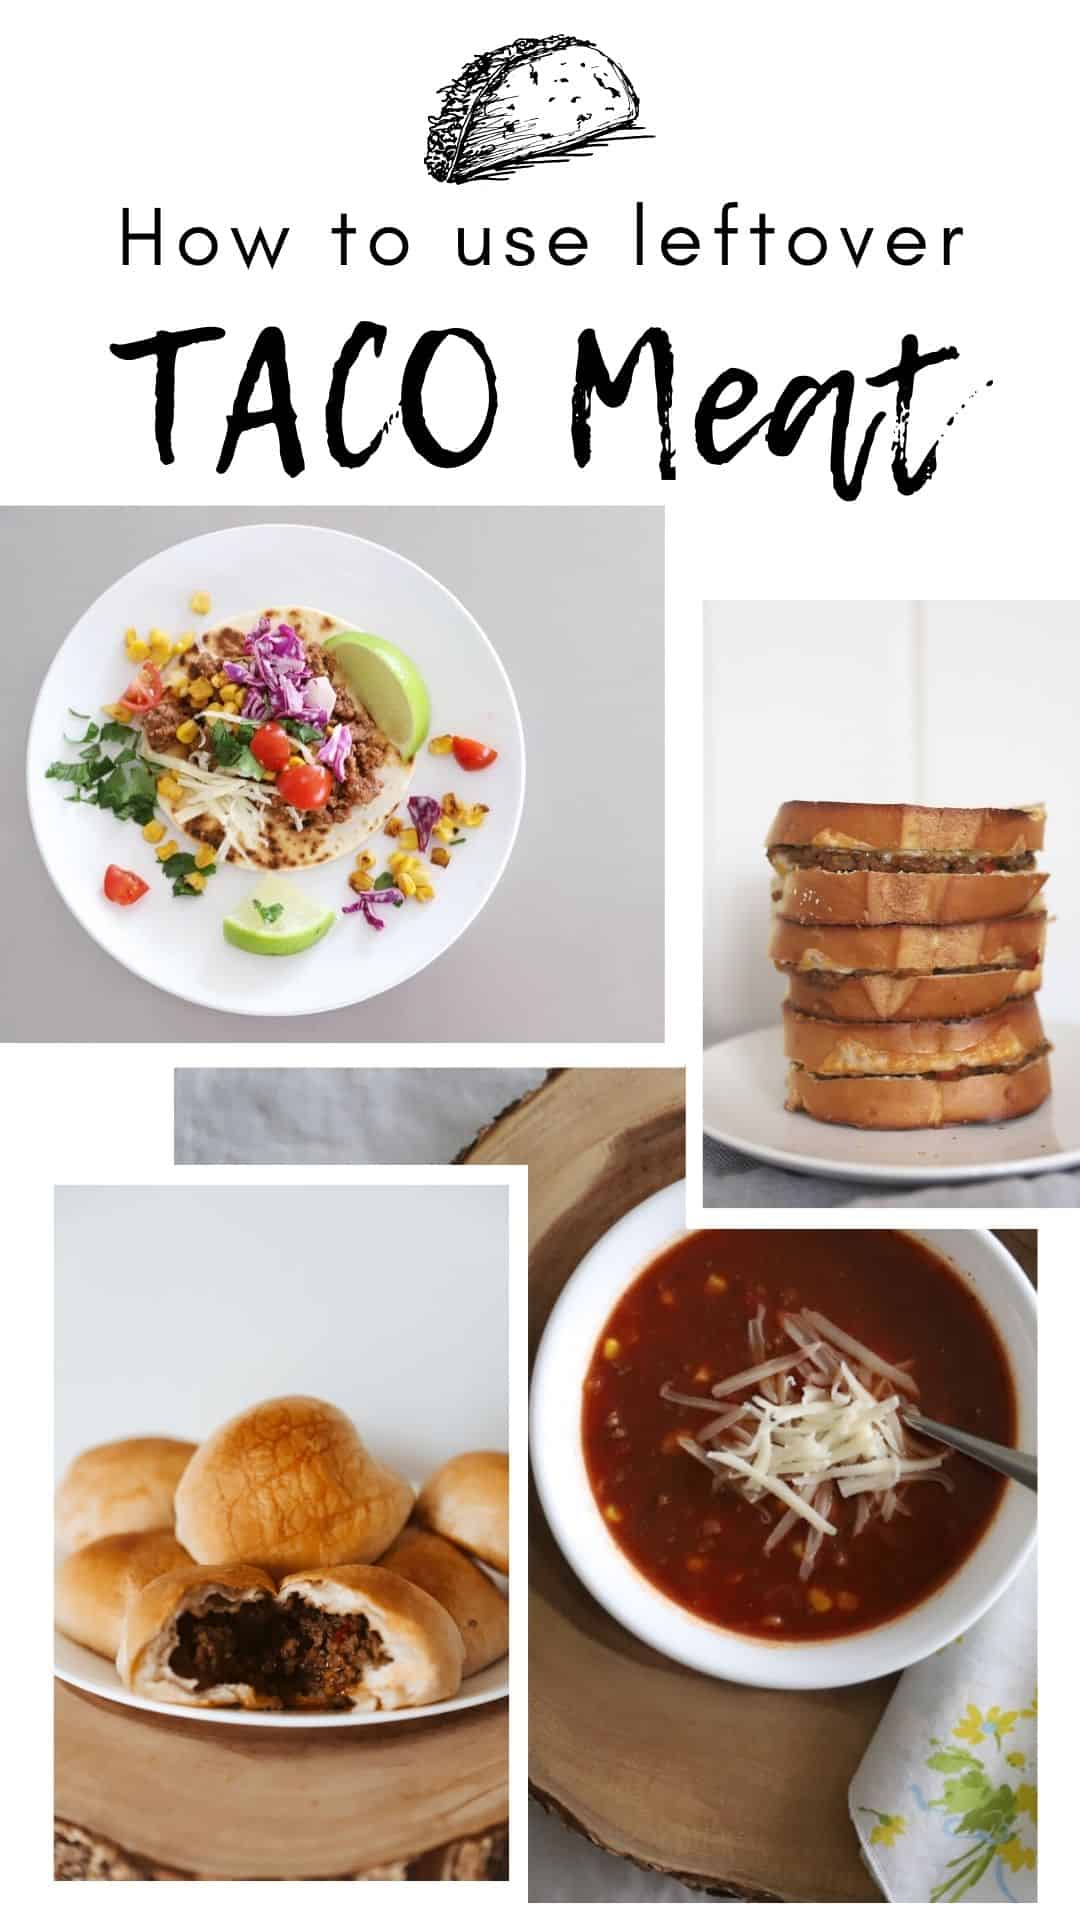 how to use leftover taco meat ideas for when you have leftover taco meat